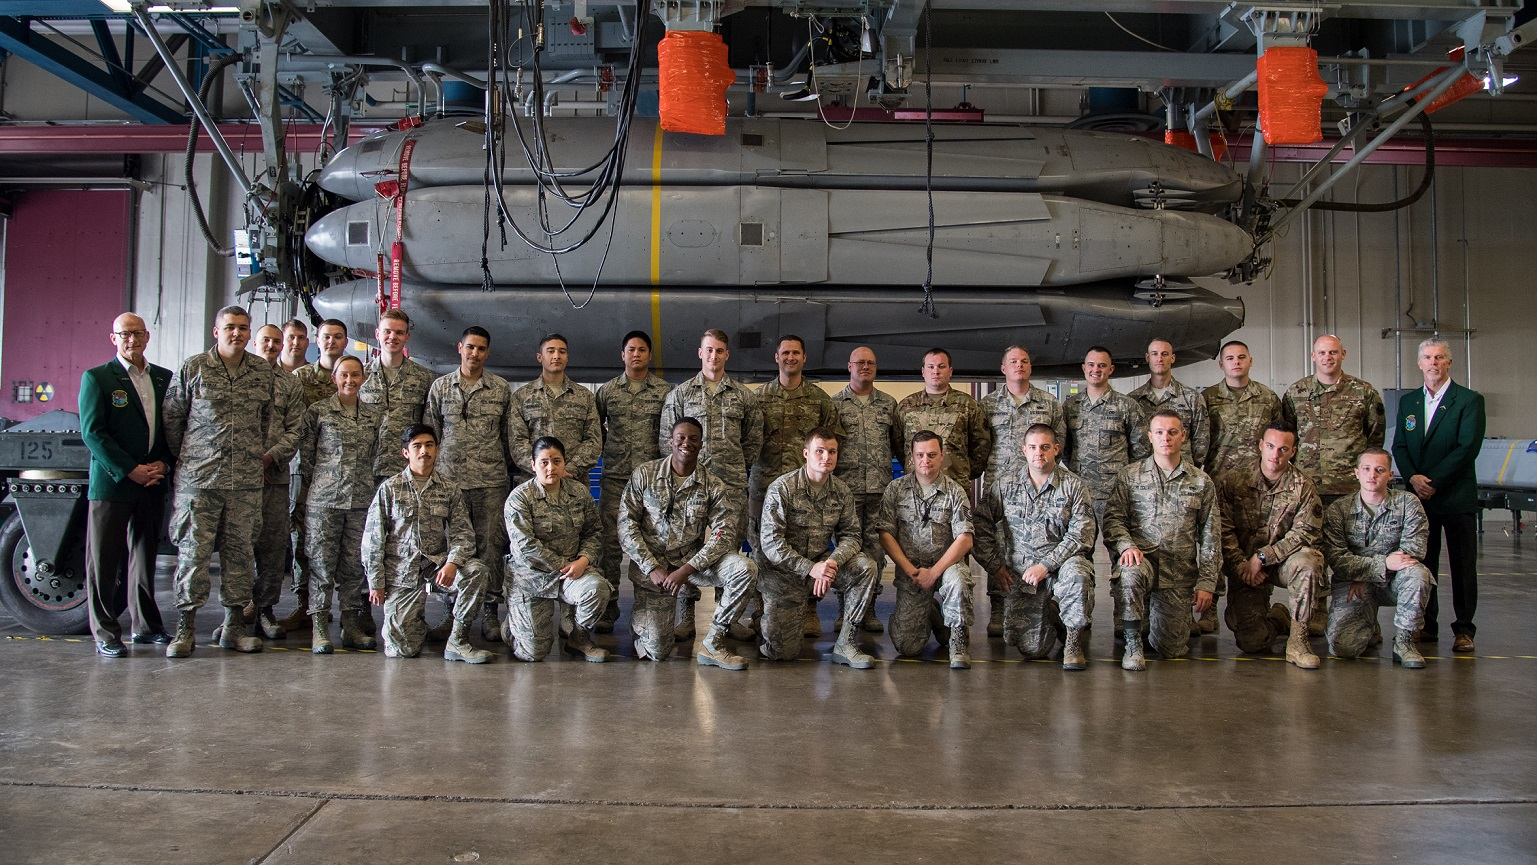 5933234 - U.S. Air Force retired integral component of long-range strategic bombing capabilities – Defence Blog